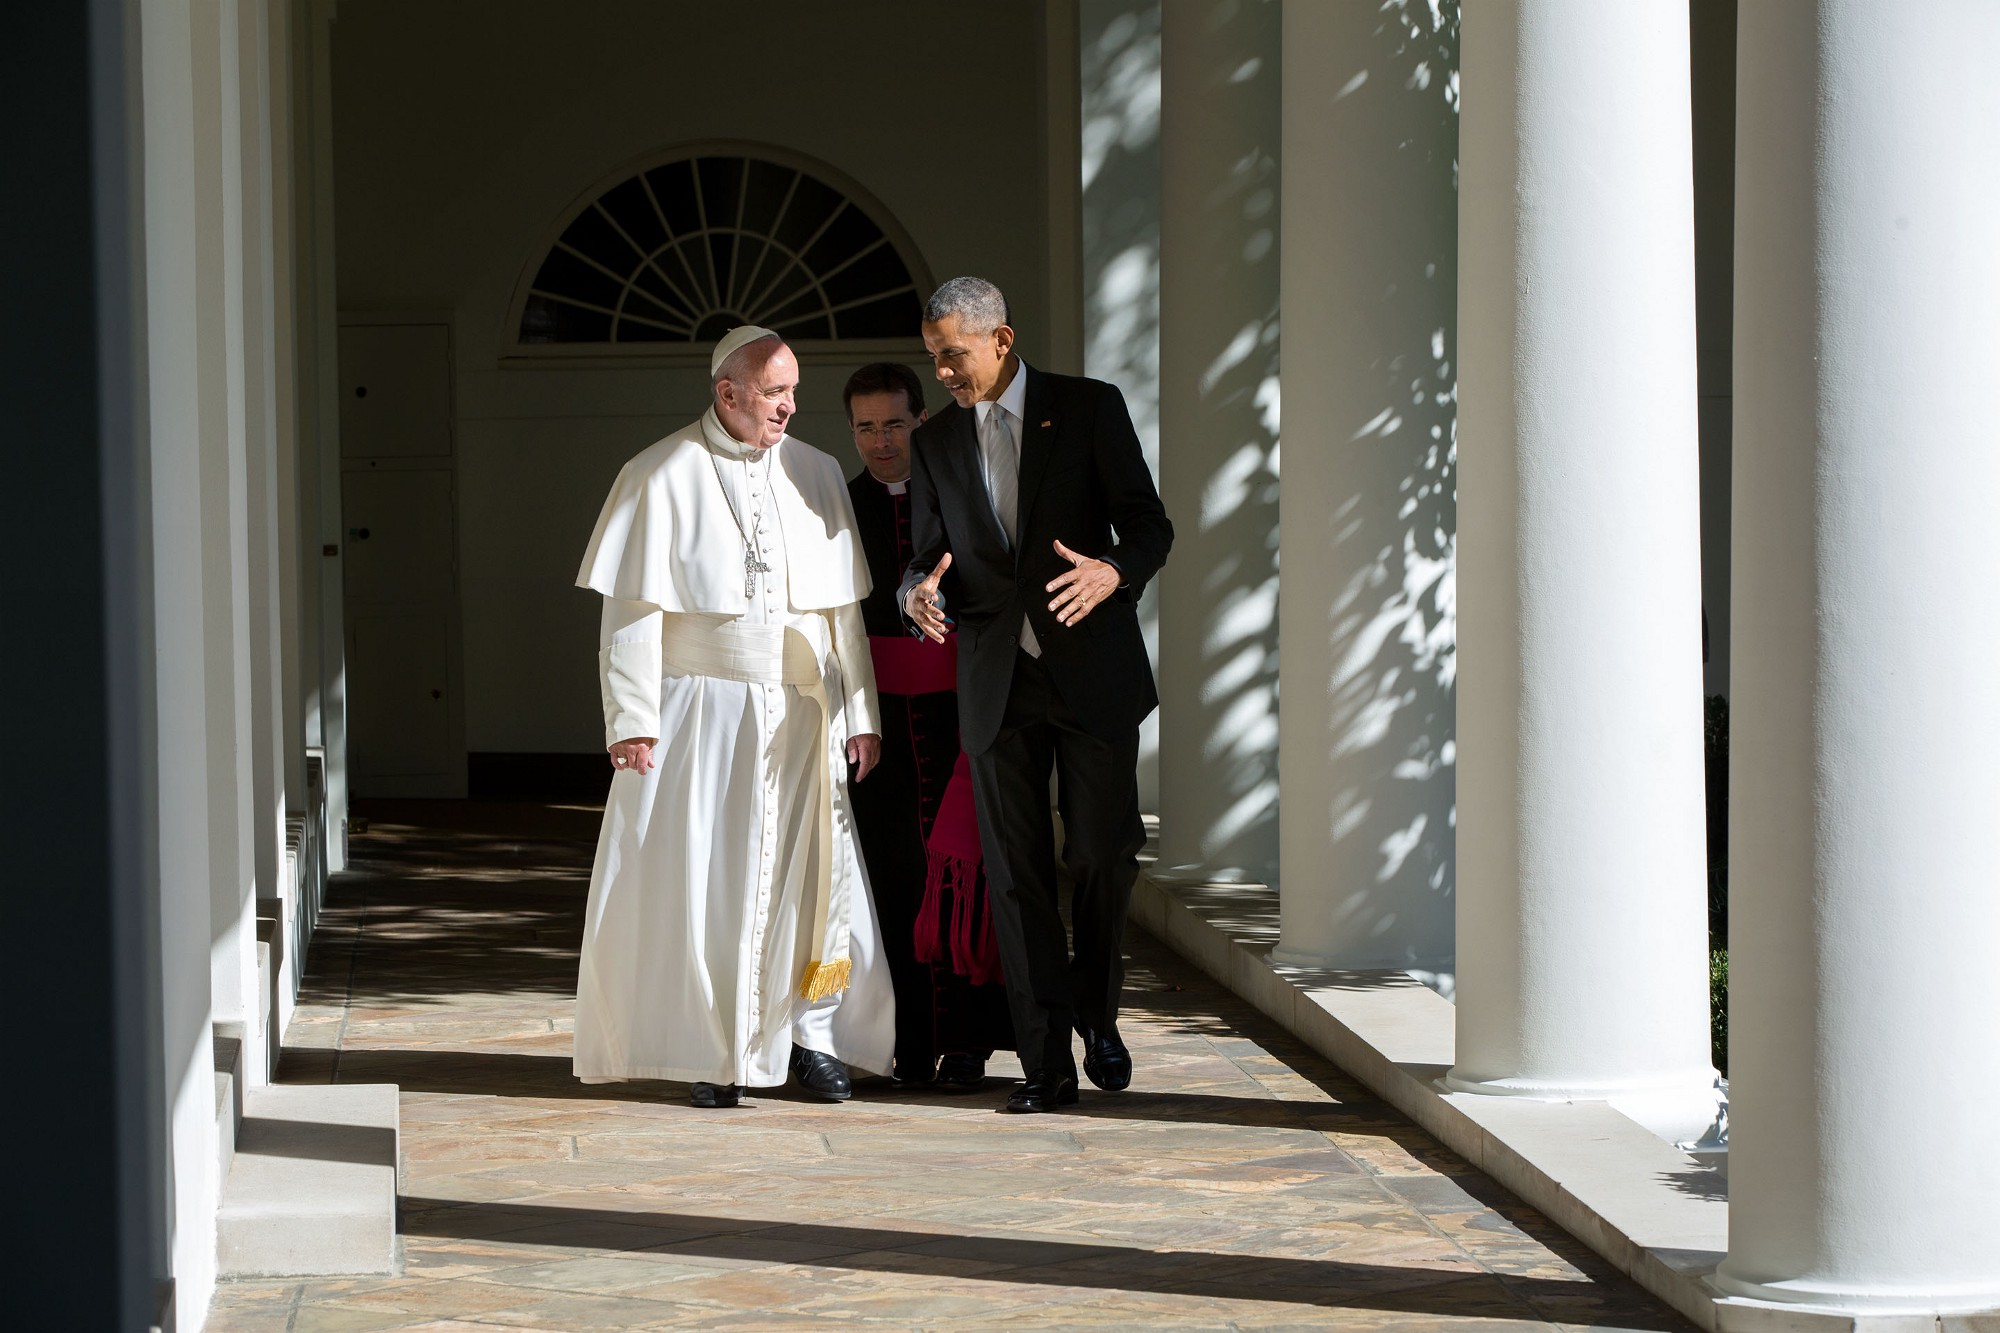 President Obama and Pope Francis walk along the Colonnade. (Official White House Photo by Pete Souza)